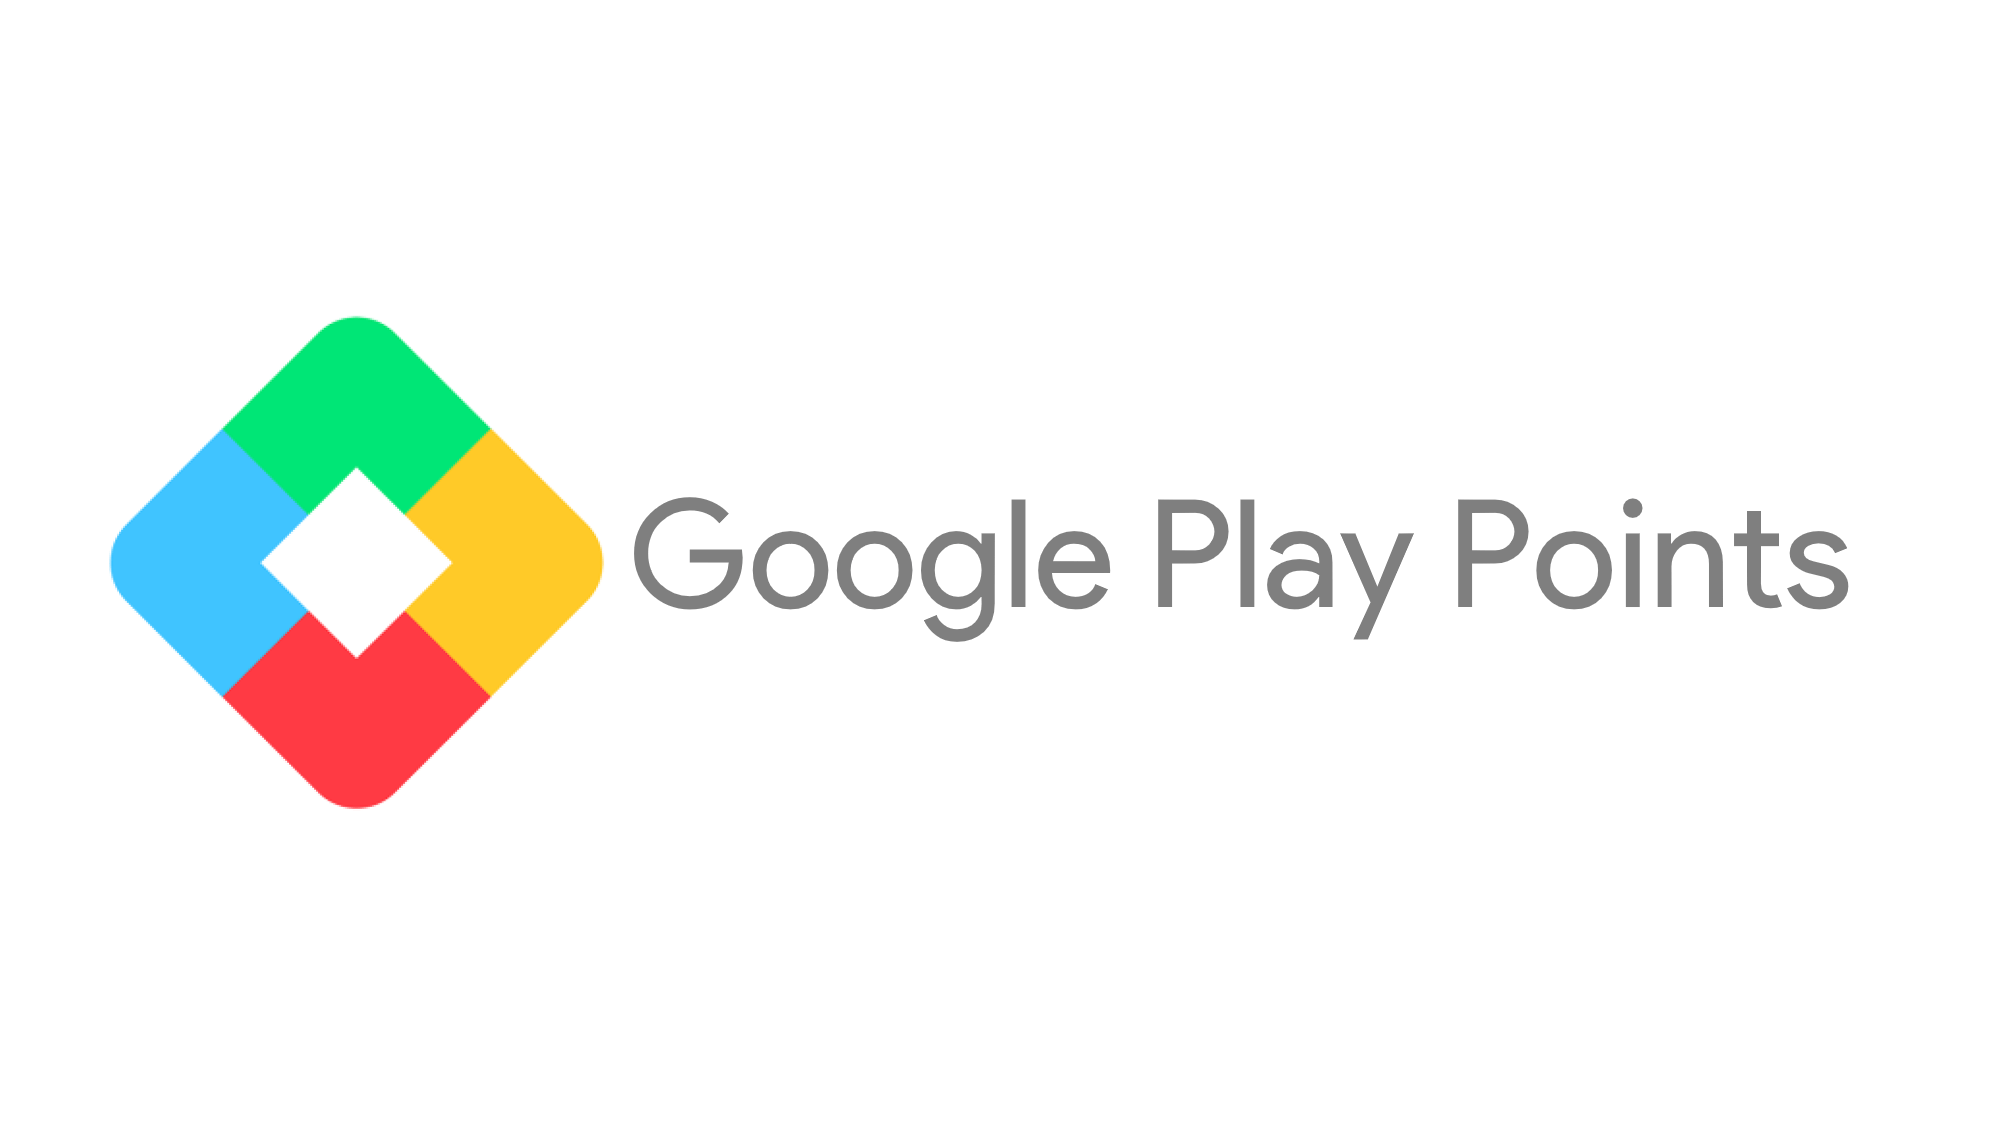 Google demands 30 pct cut from app developers in its Play Store